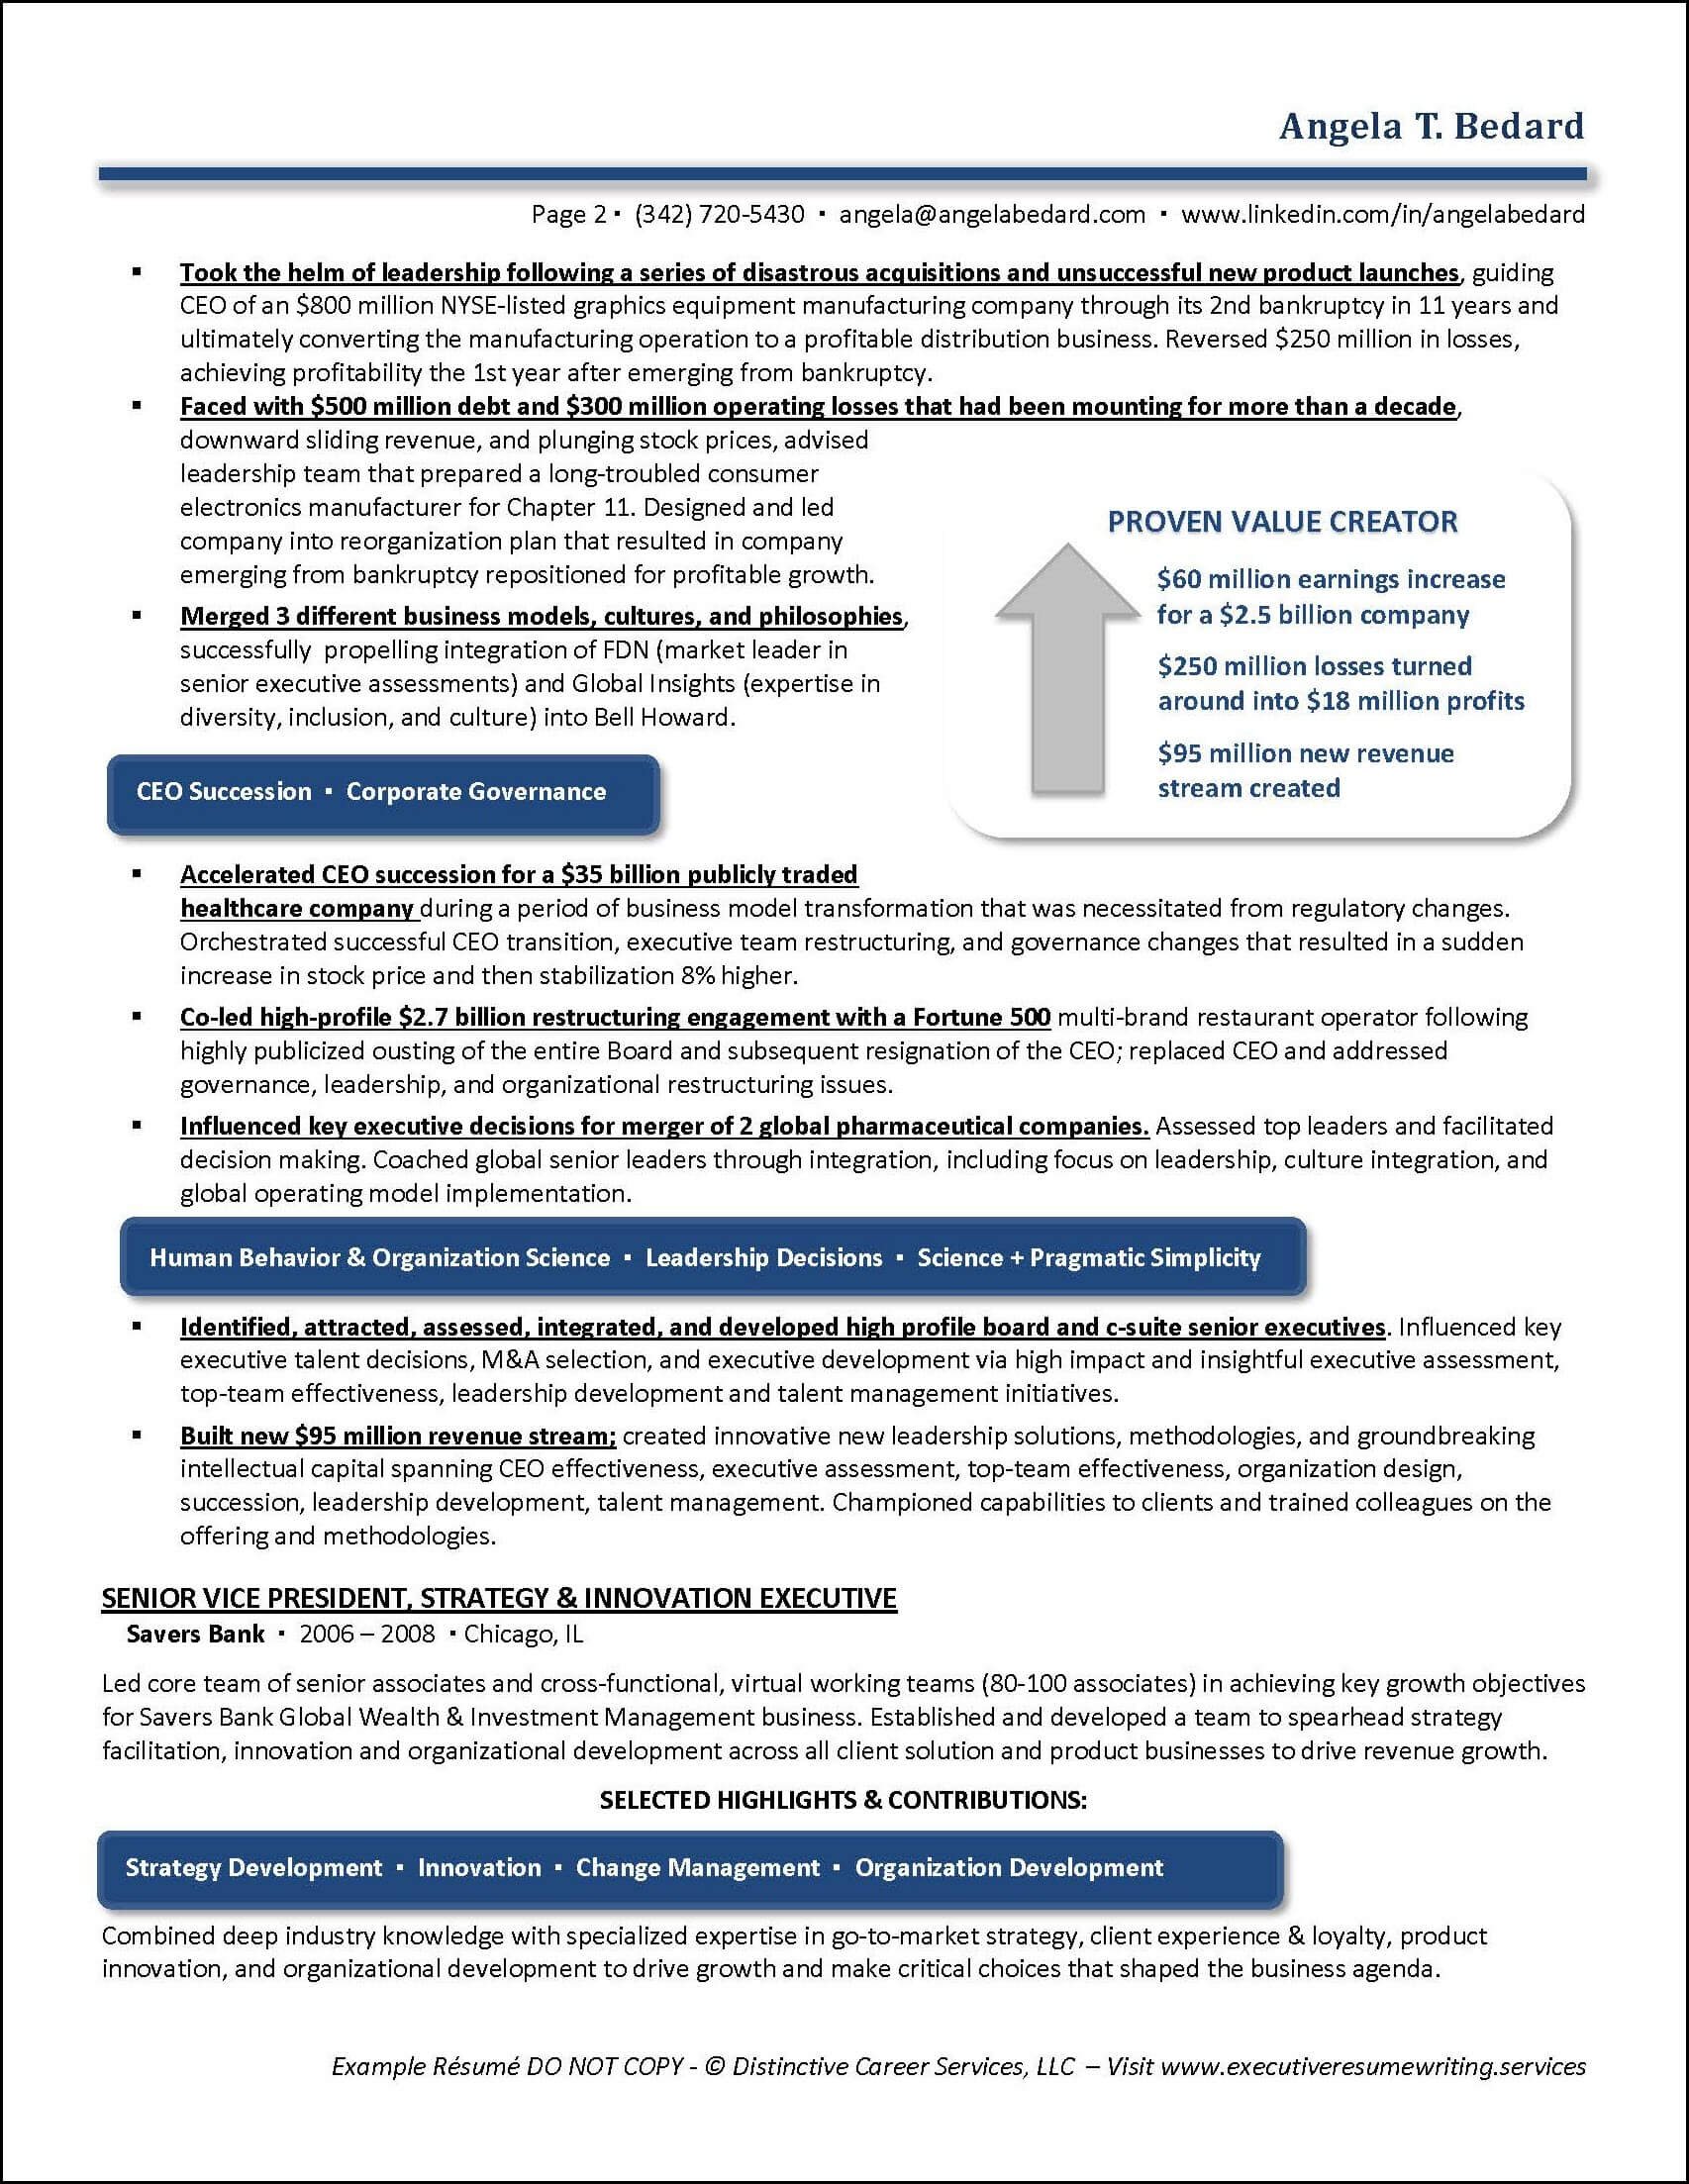 Example Management Consulting Executive Resume pg 2